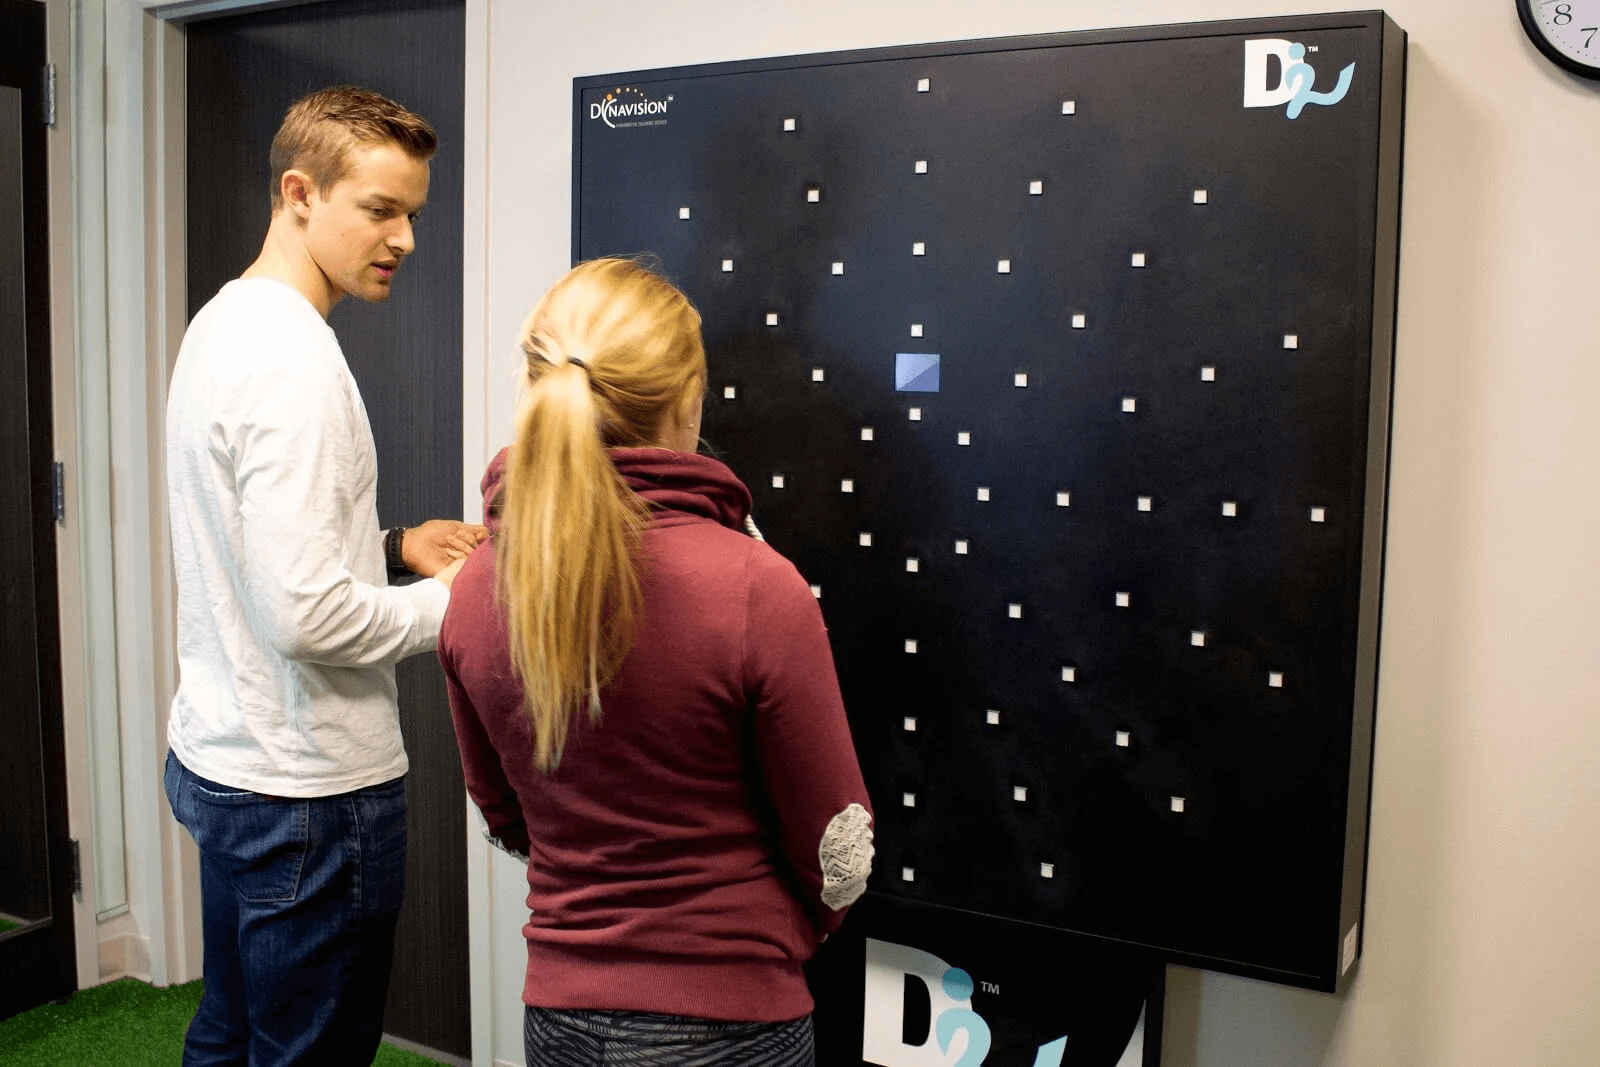 A patient is learning how to use the Dynavision board.